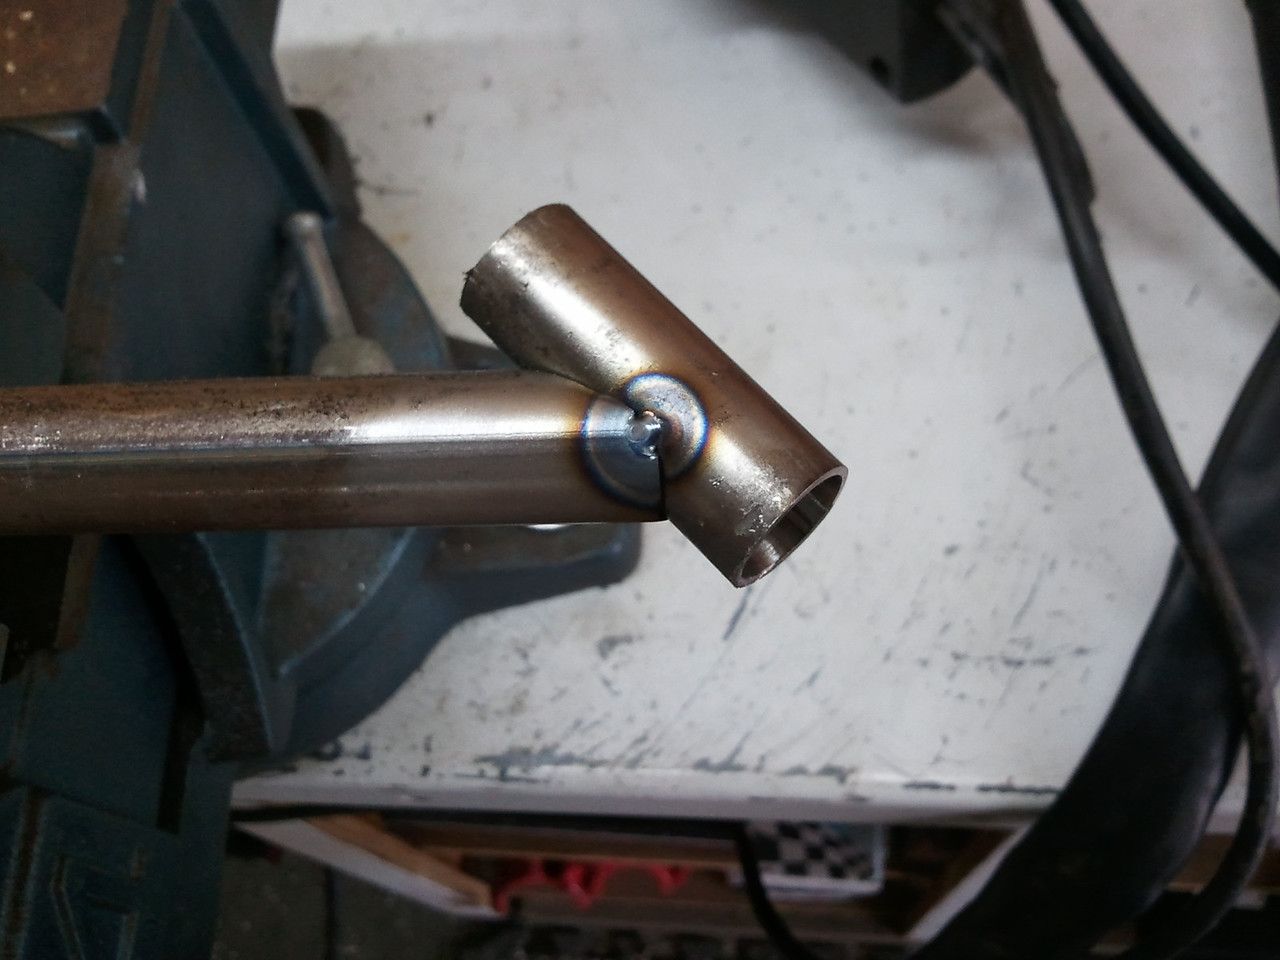 Tacked on both sides, then remove clamp to position for welding